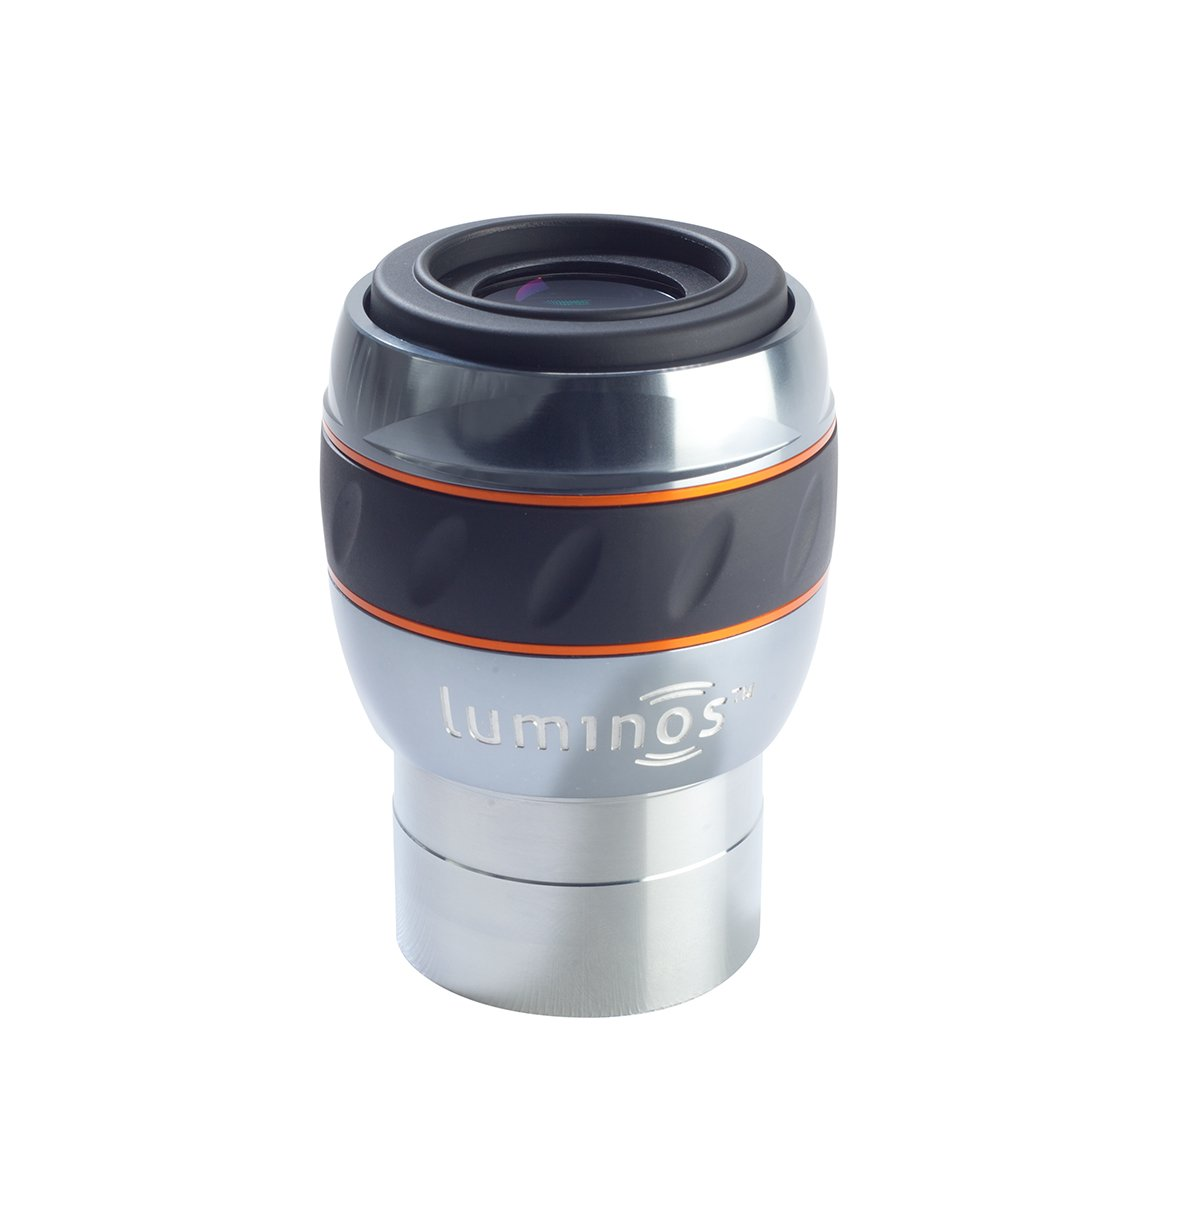 Celestron 93433 Luminos 19mm Eyepiece (Silver/Black) by Celestron